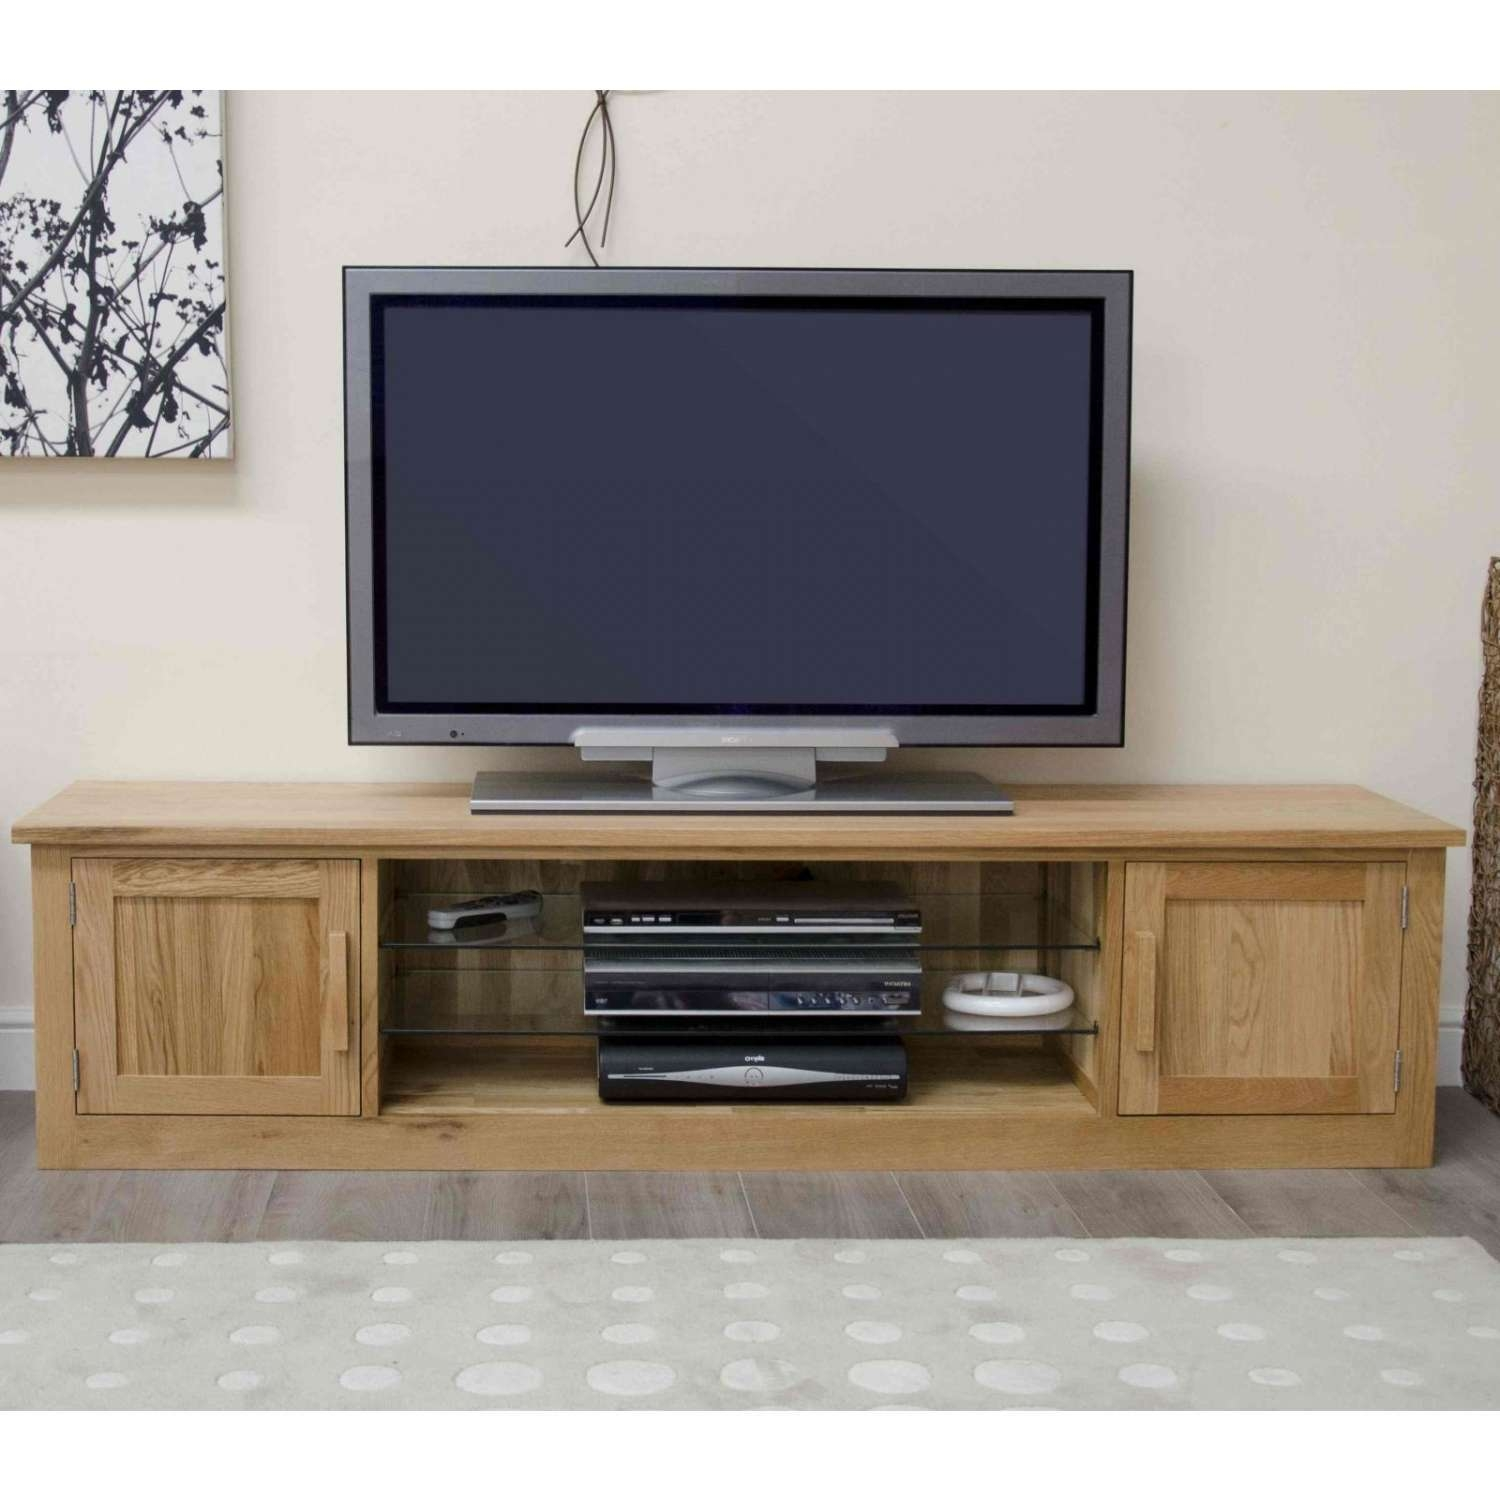 Arden Solid Oak Living Room Furniture Large Widescreen Tv Cabinet Inside Tv Stands In Oak (View 1 of 15)